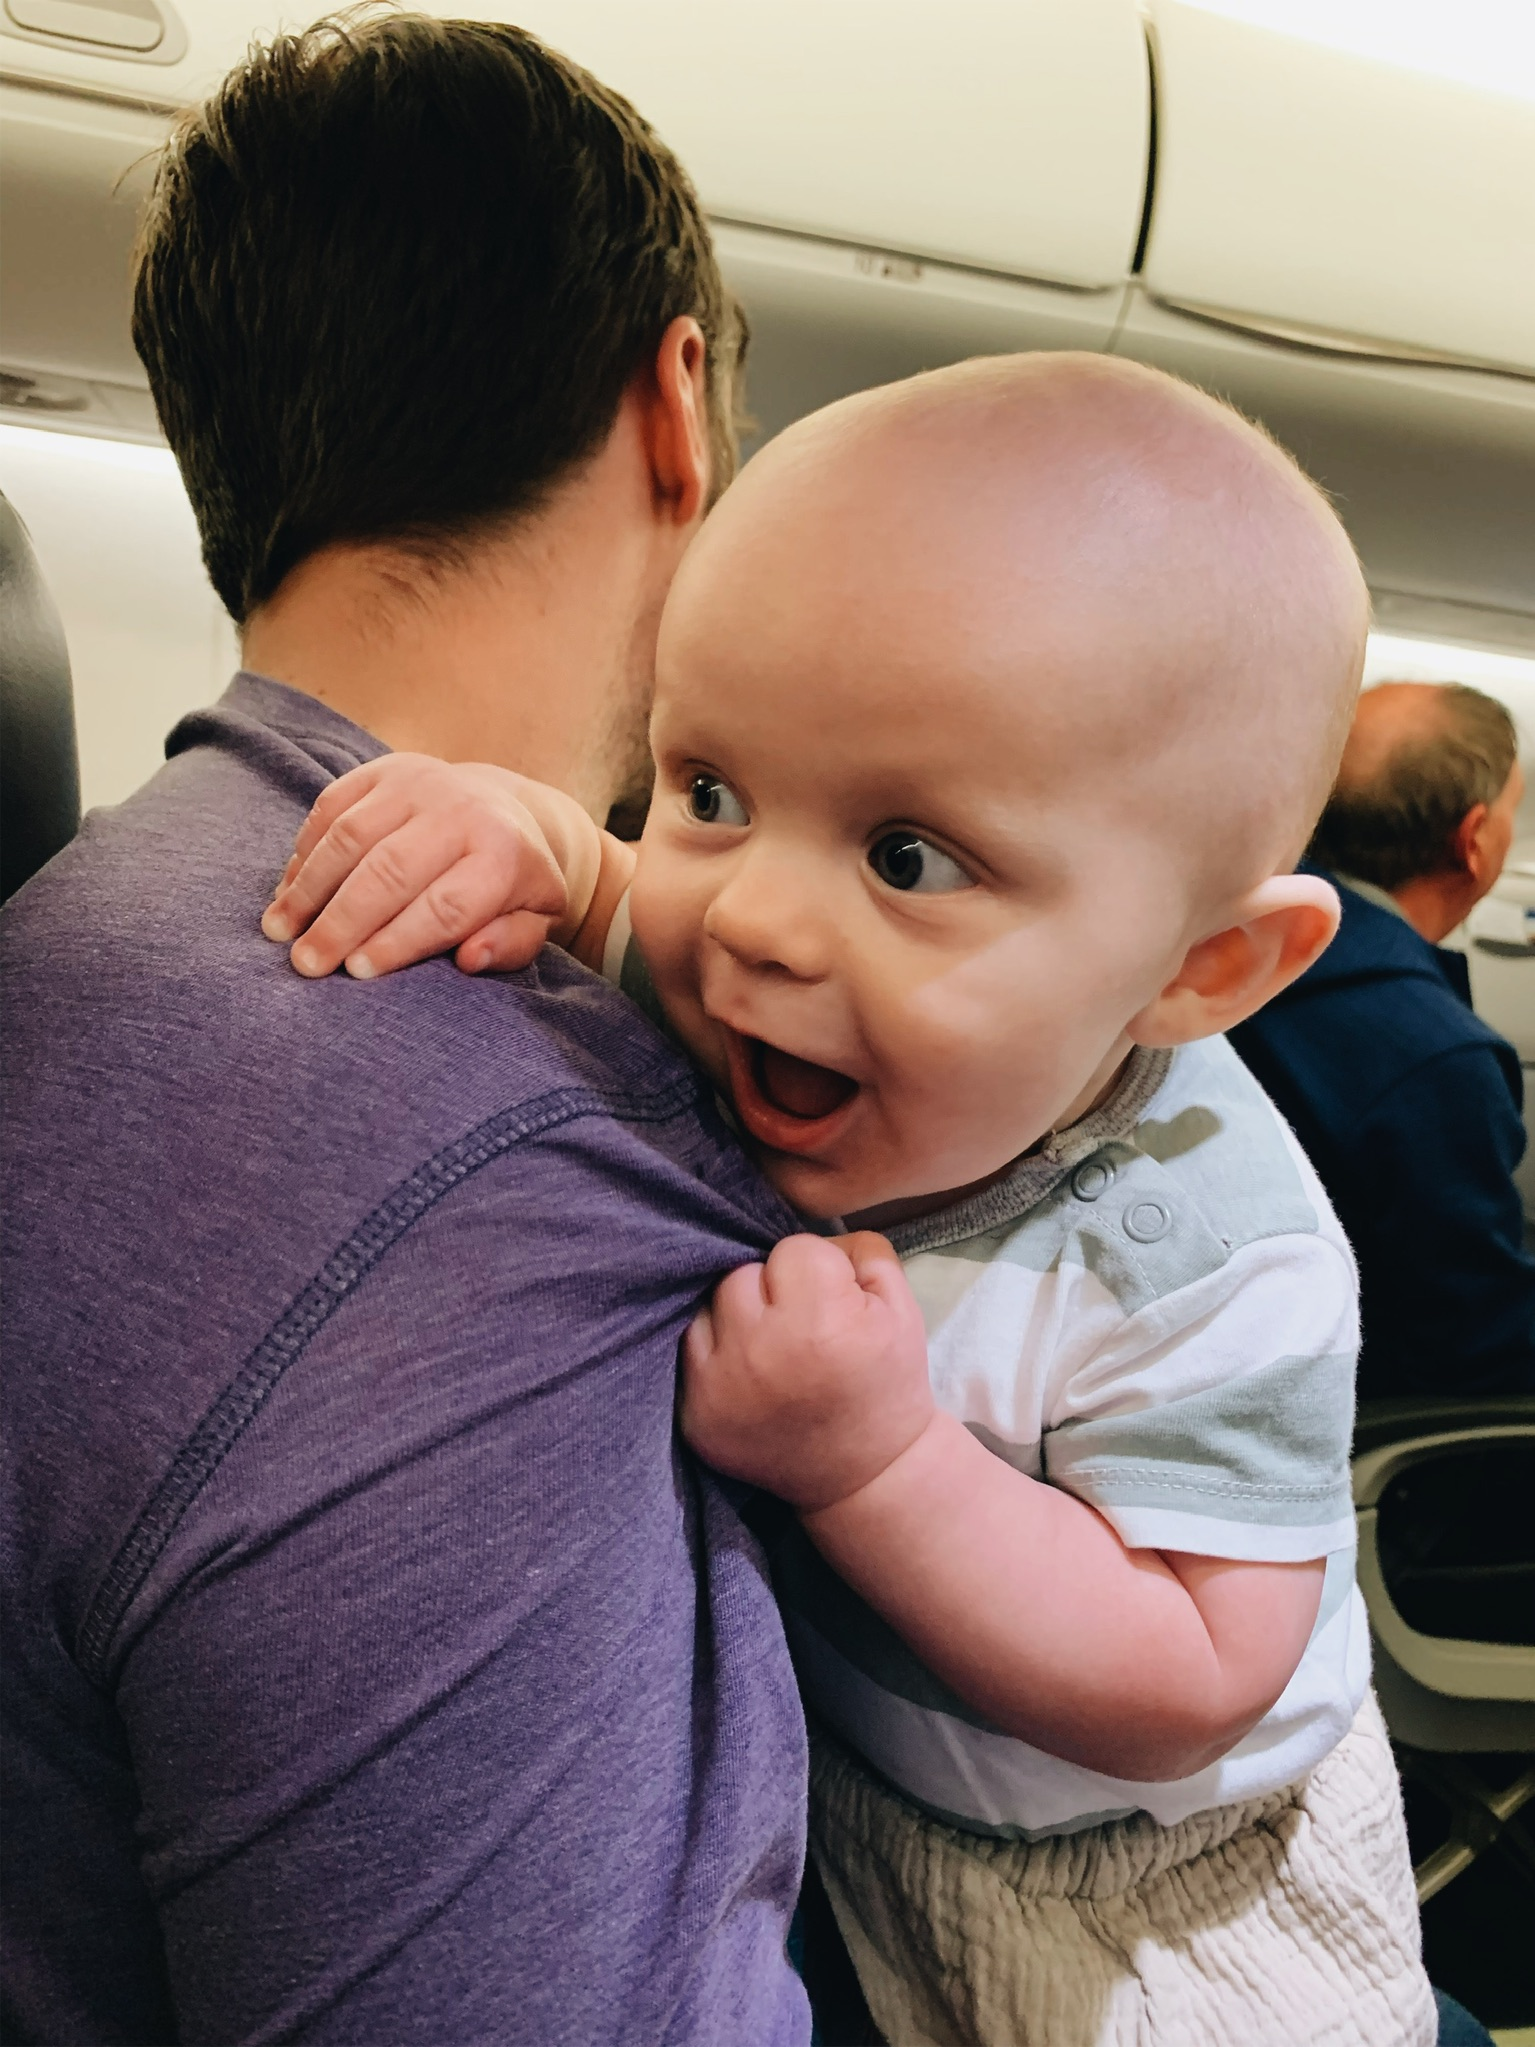 Smiling at everybody on the plane